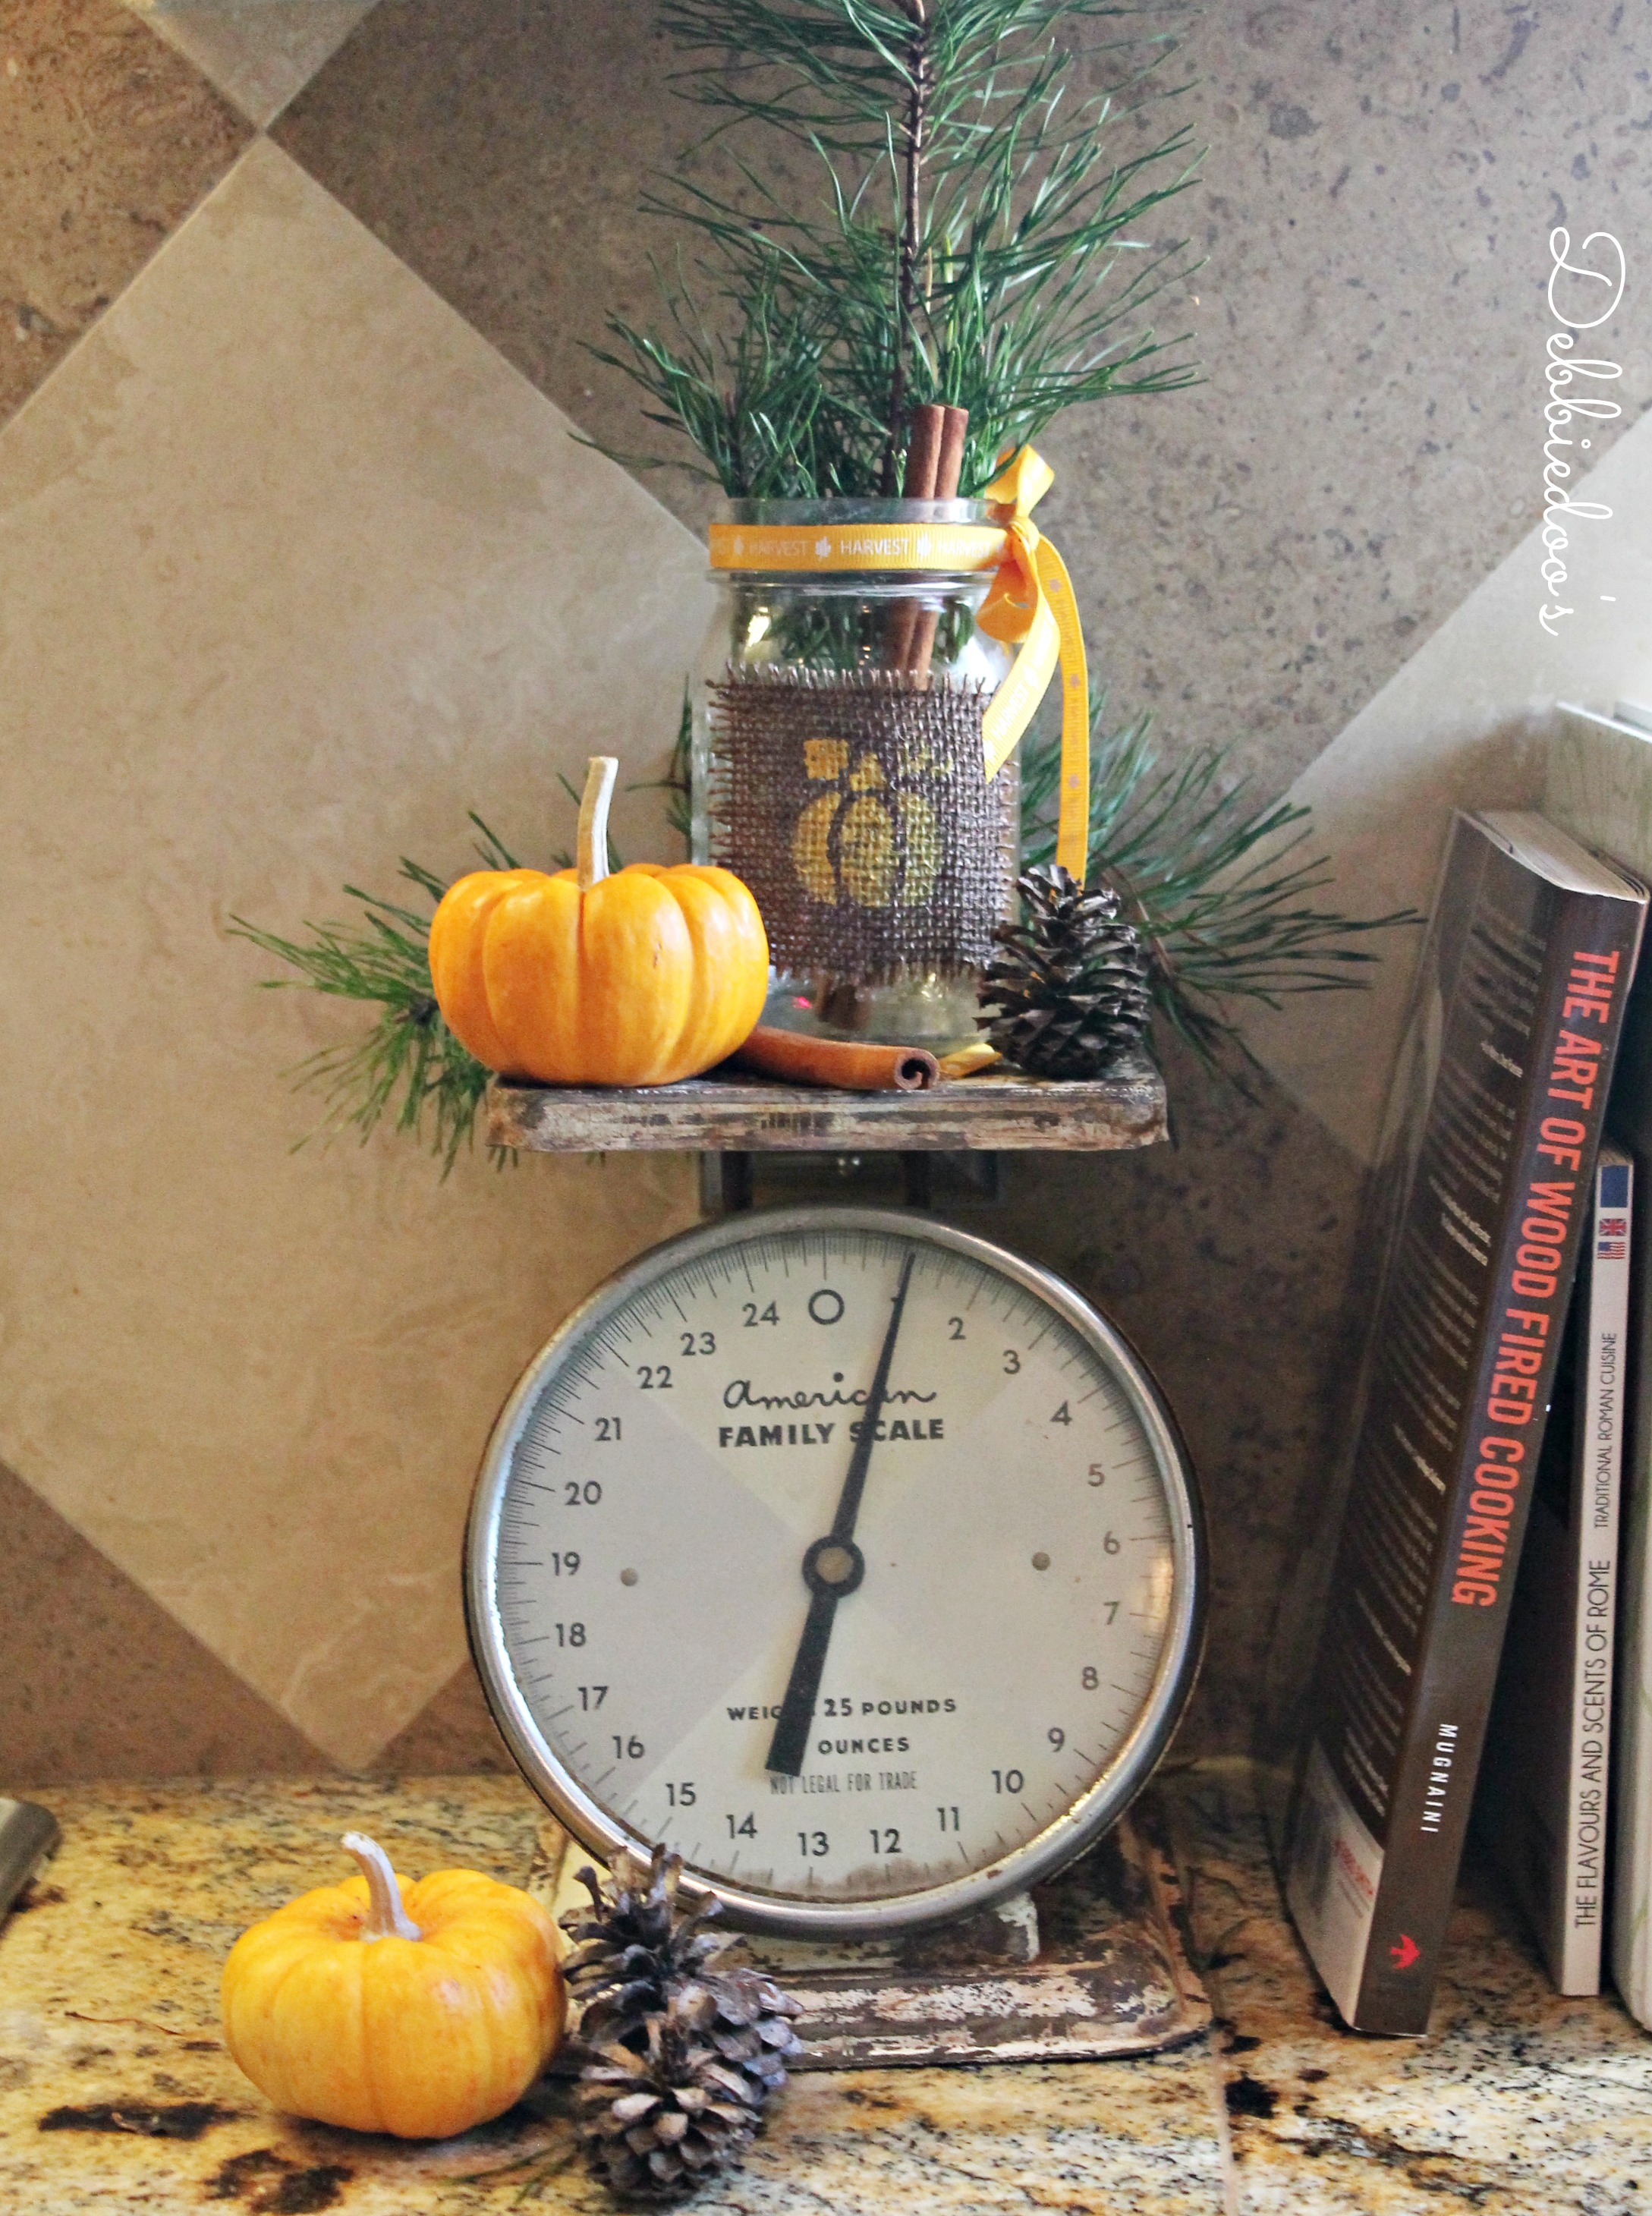 Fall mason jar vignette on vintage scale